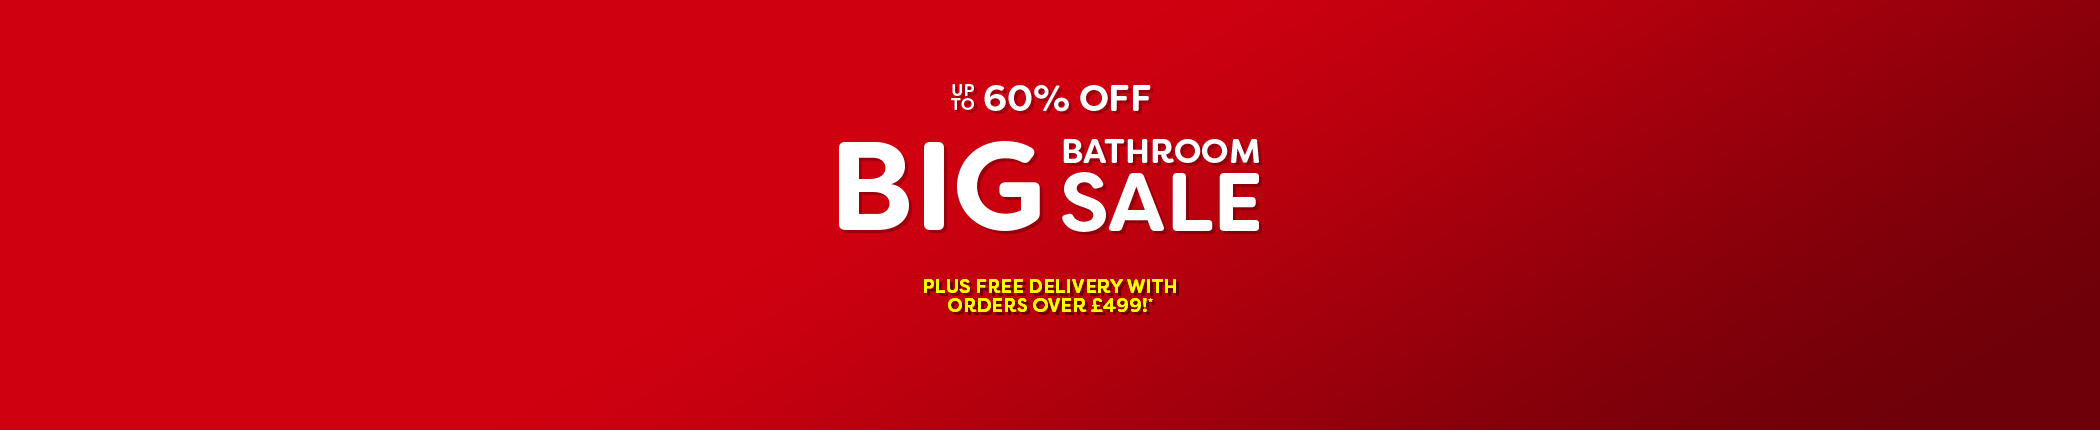 Big Bathroom Sale